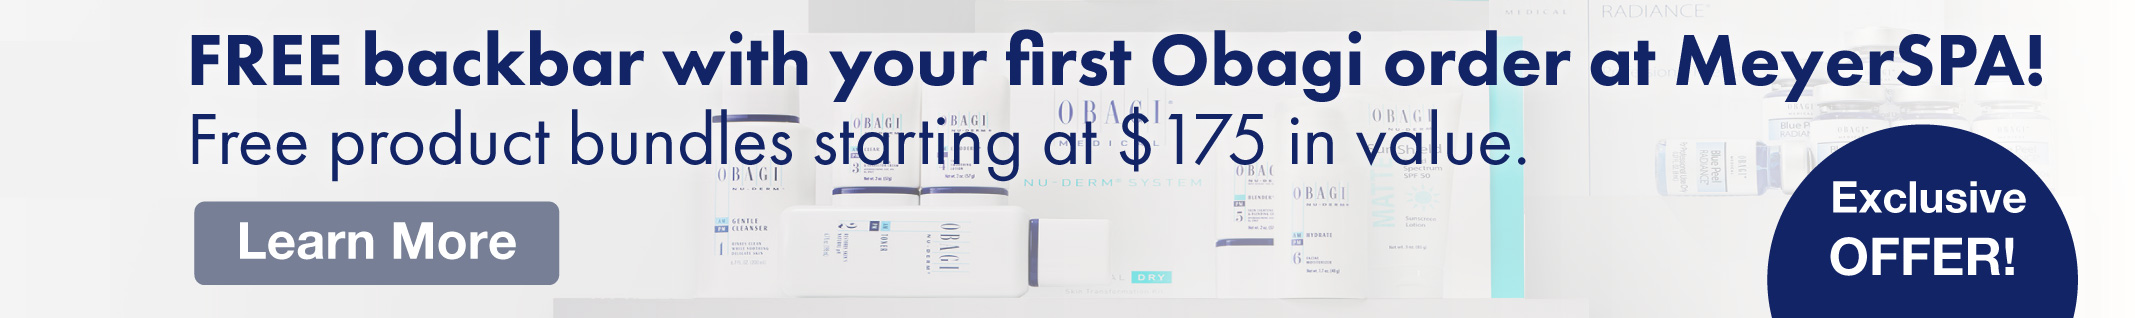 Home Page Banner Ad –  Shop Obagi Medical Skincare - Backbar Offer – Click to View Page